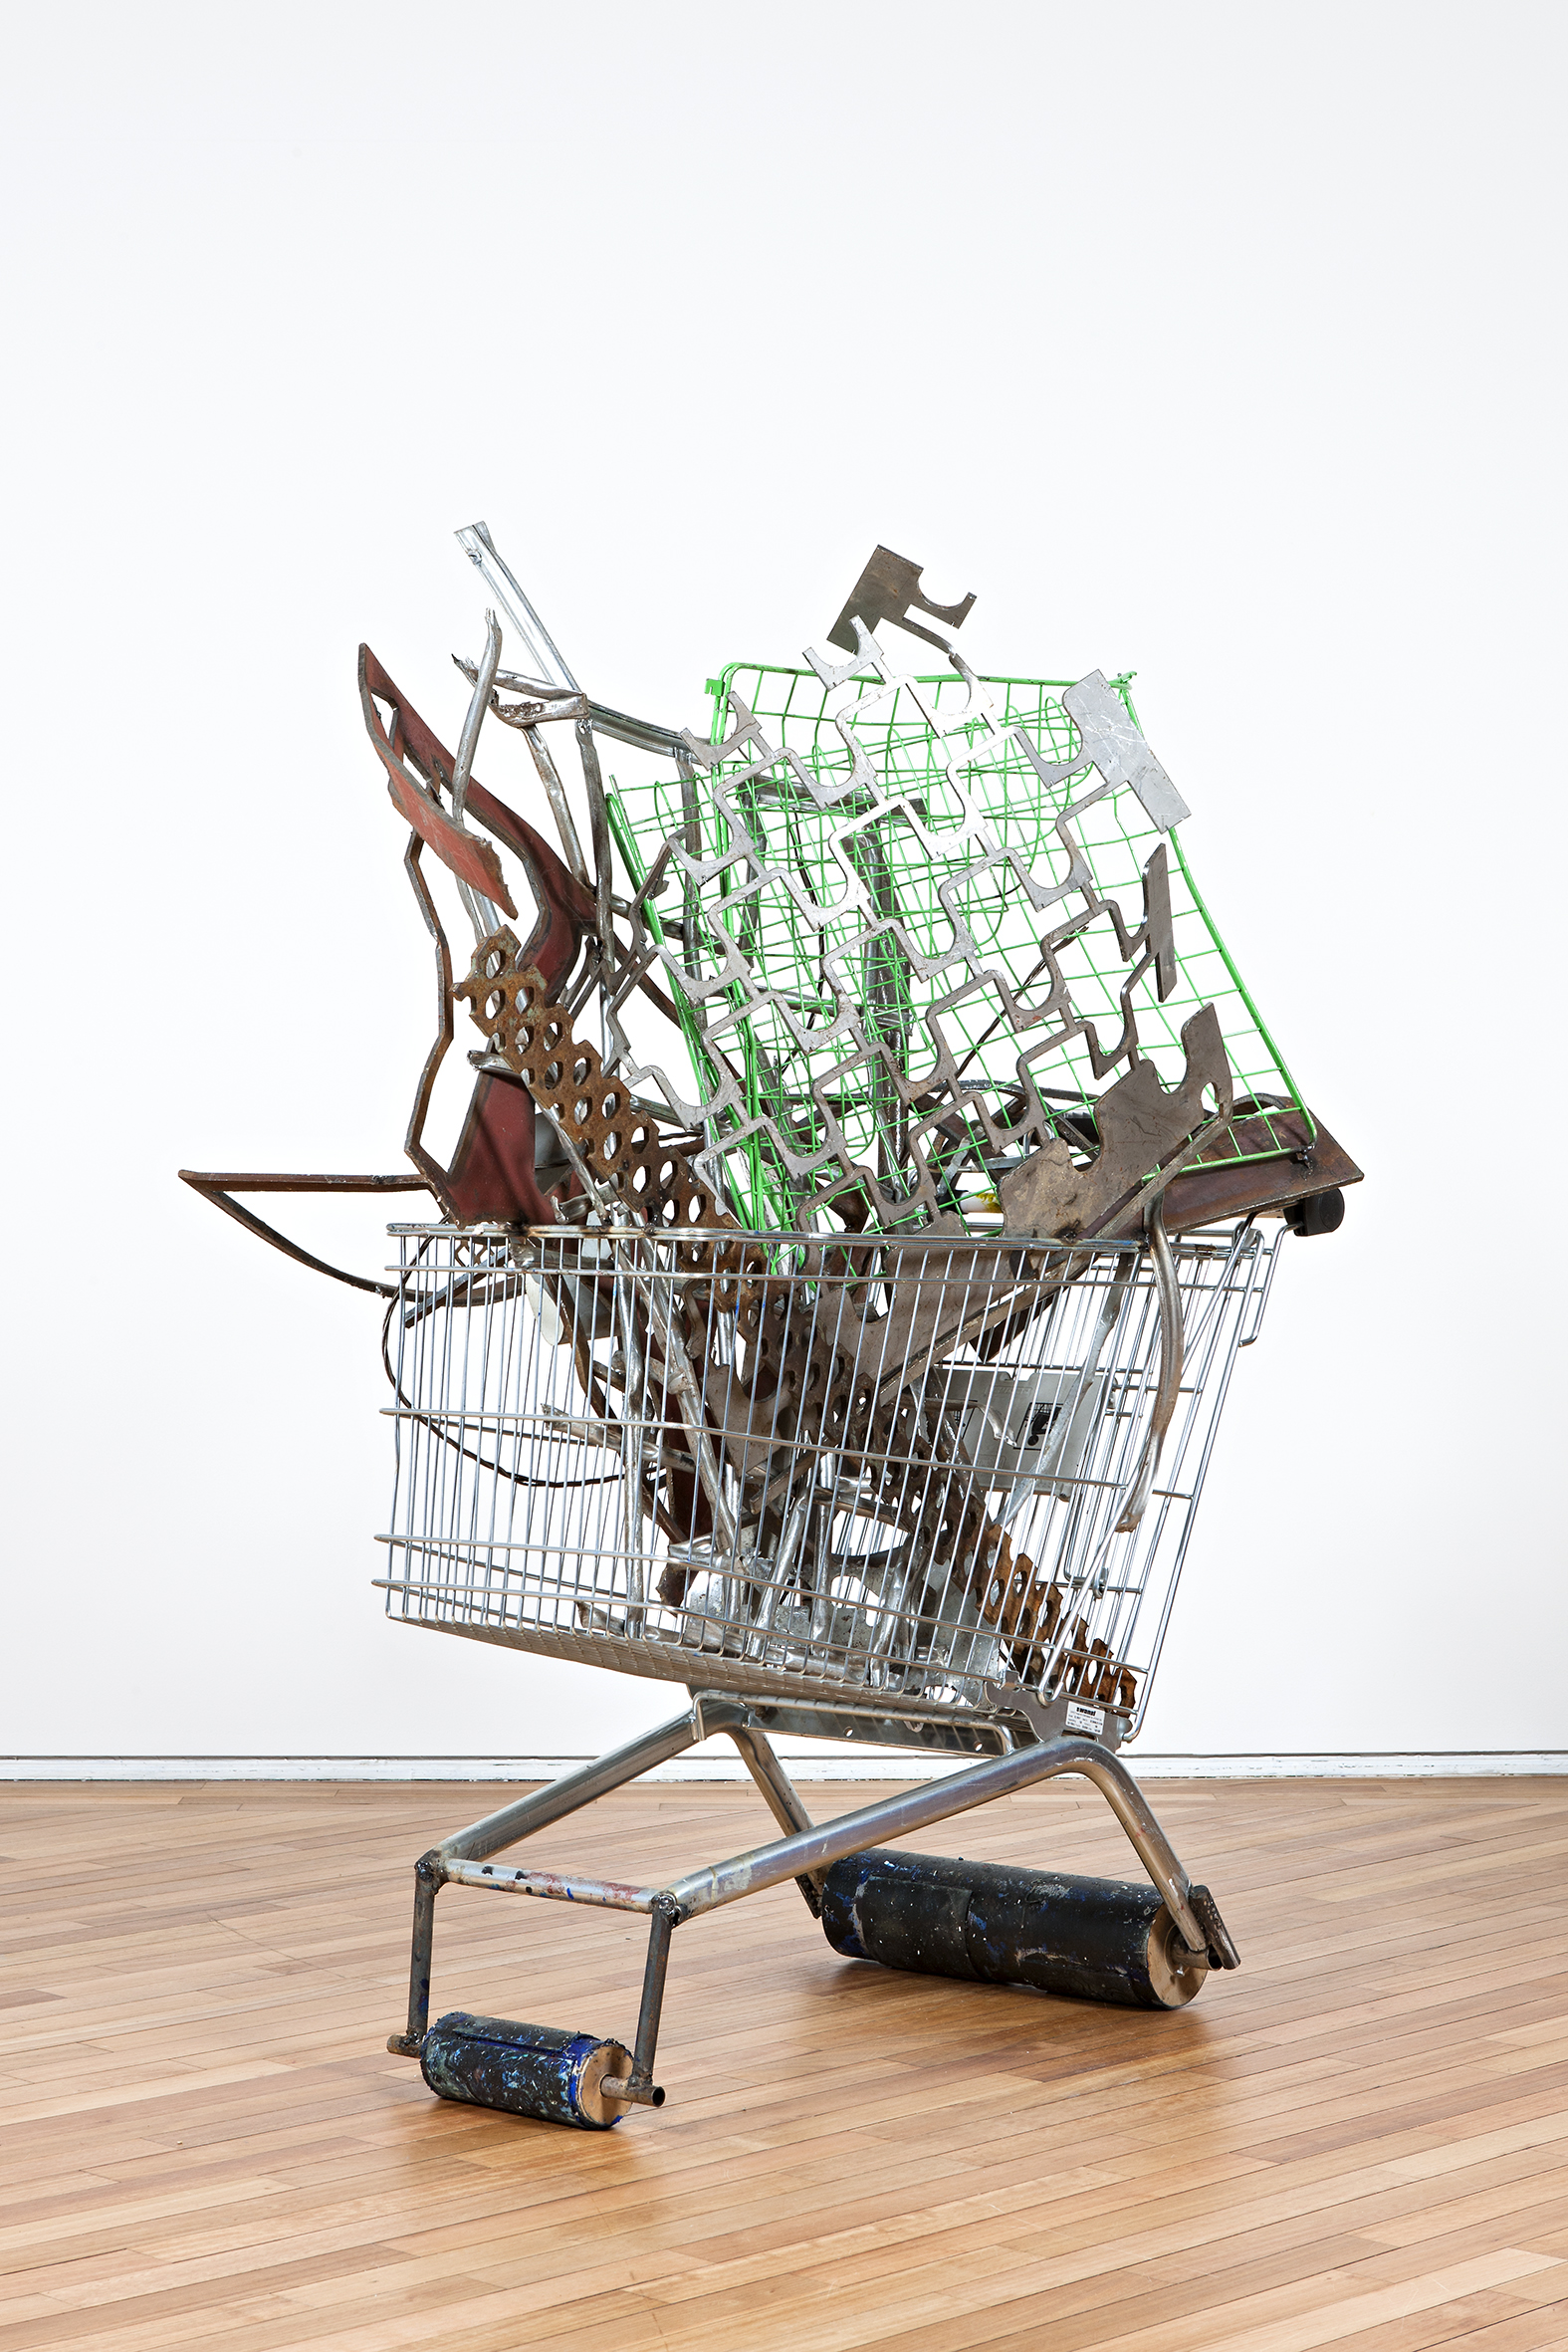 Wagon (Two weeping mice) 2013 Shopping trolley with welded found steel objects,supporting cylinder wheels and added lino mats Dimensions variable